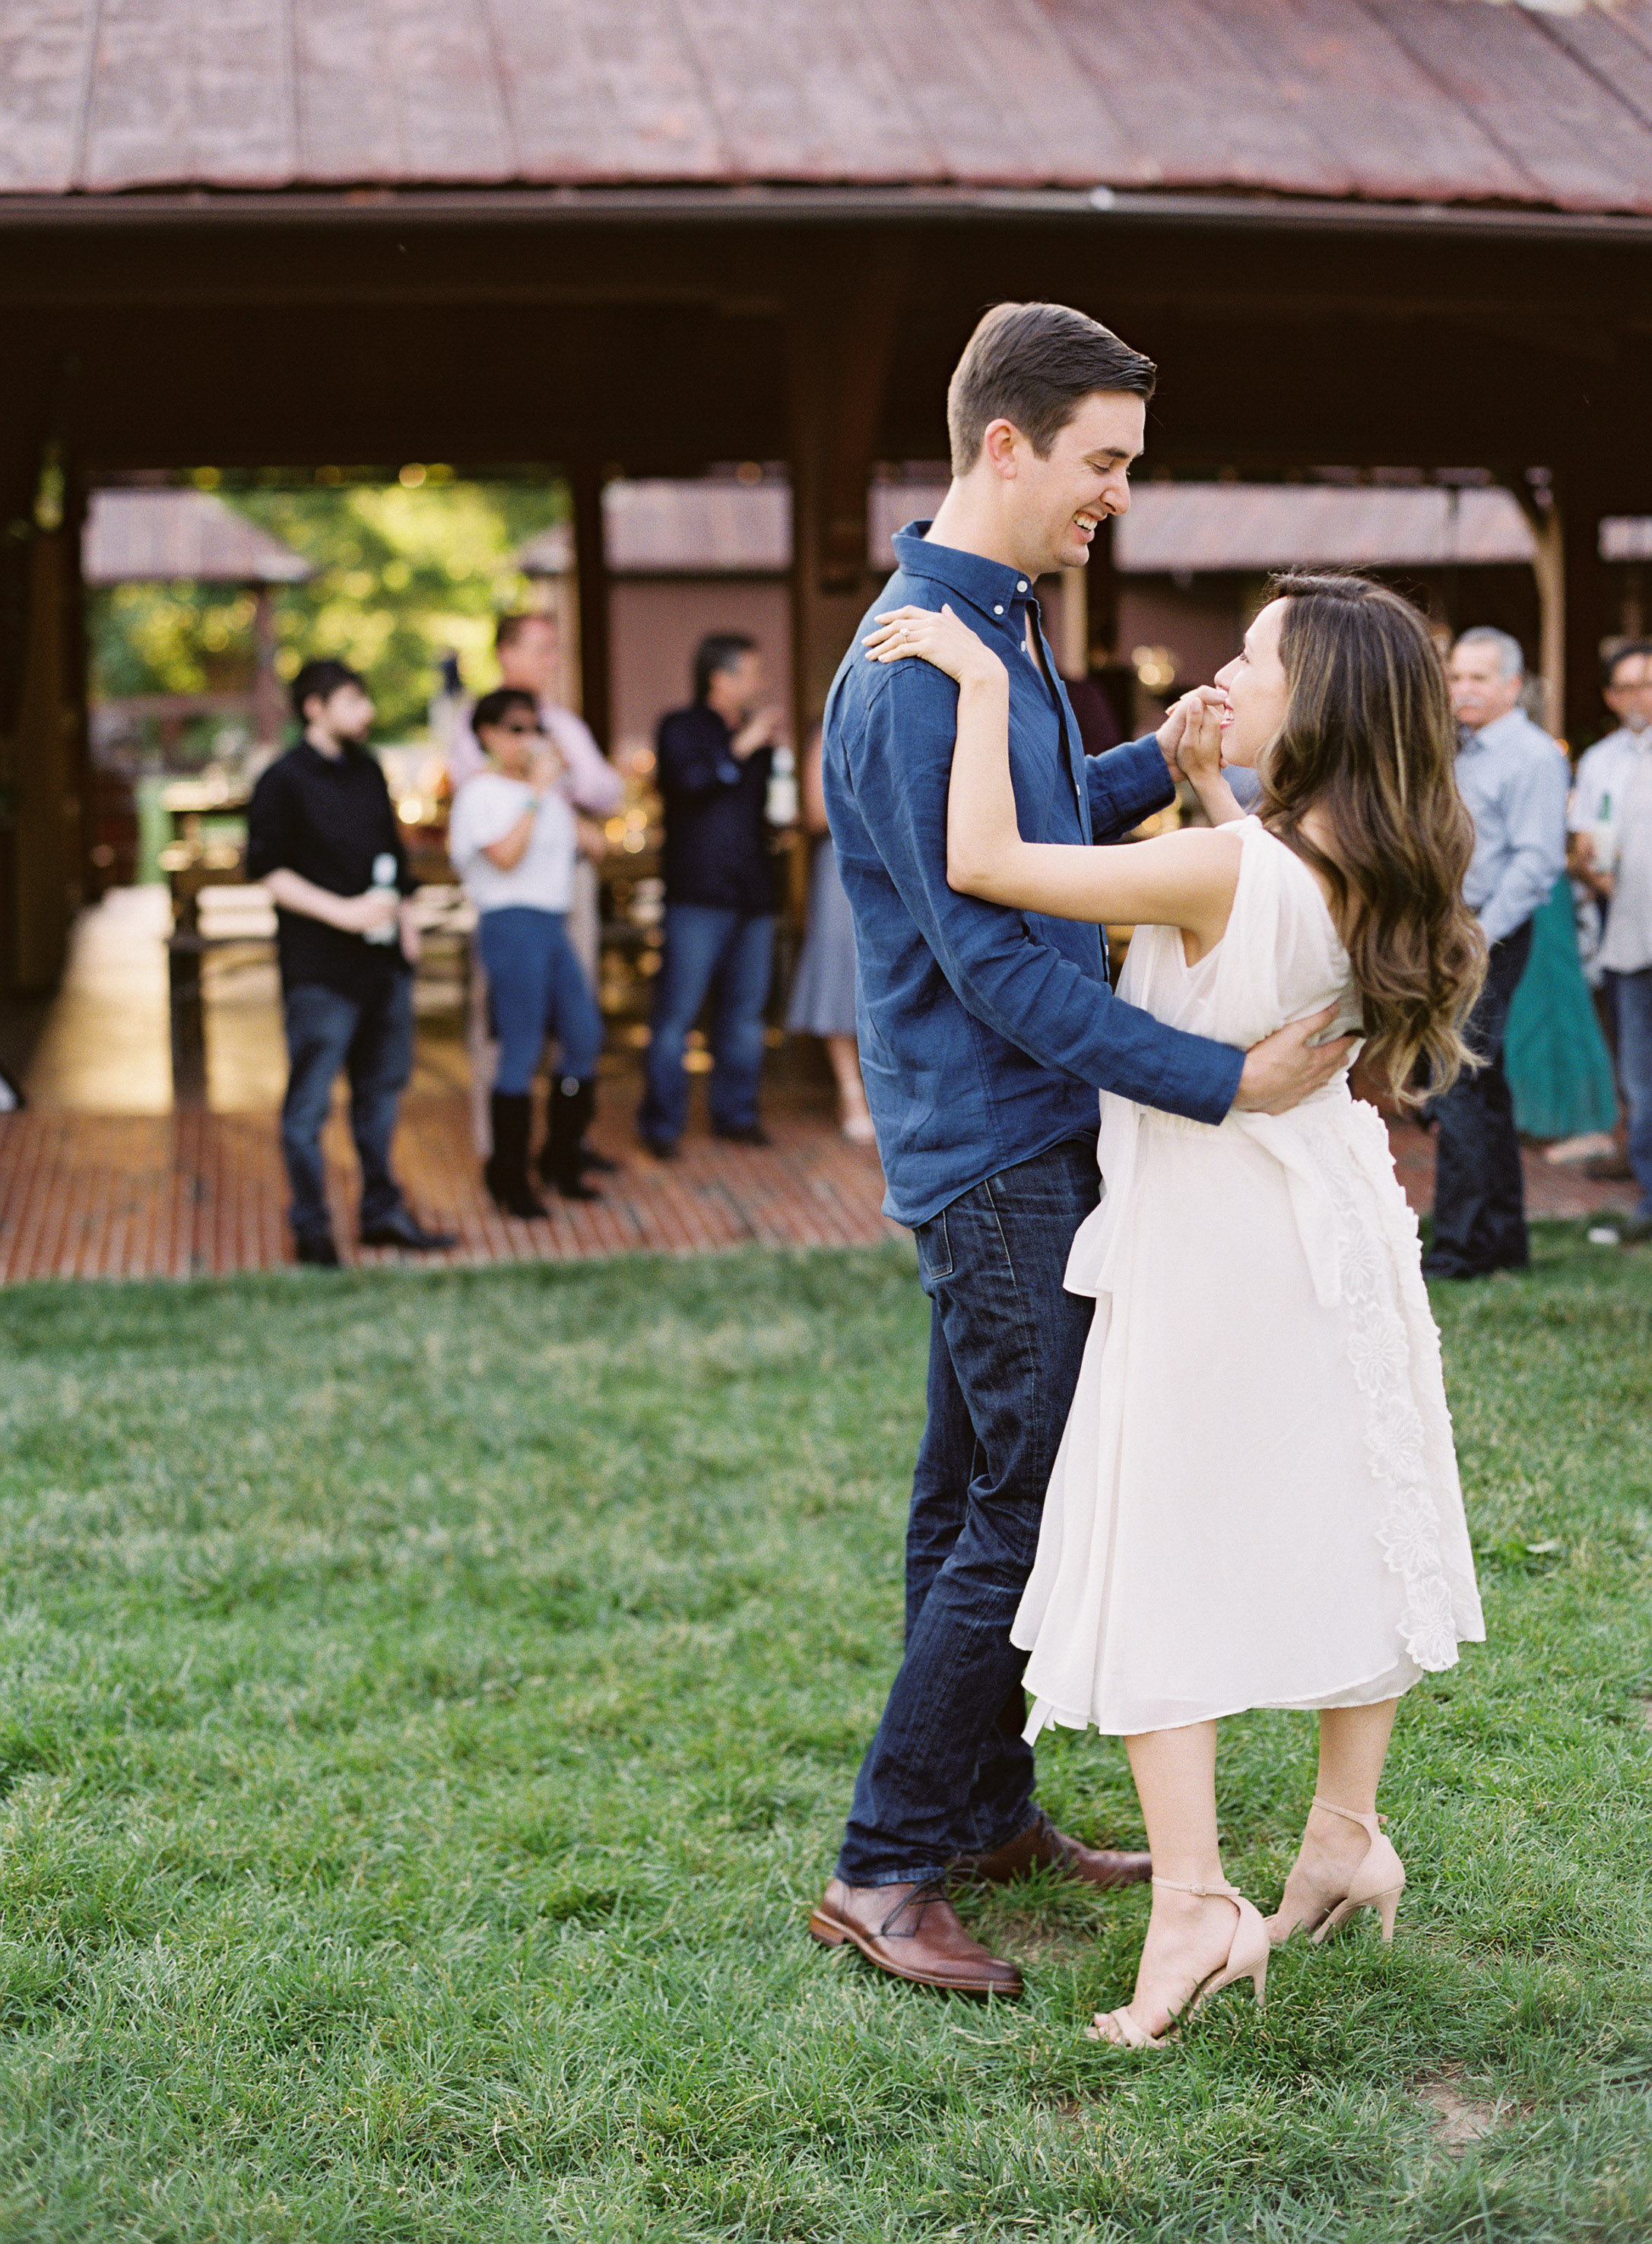 4 Alternatives to the Traditional Rehearsal Dinner